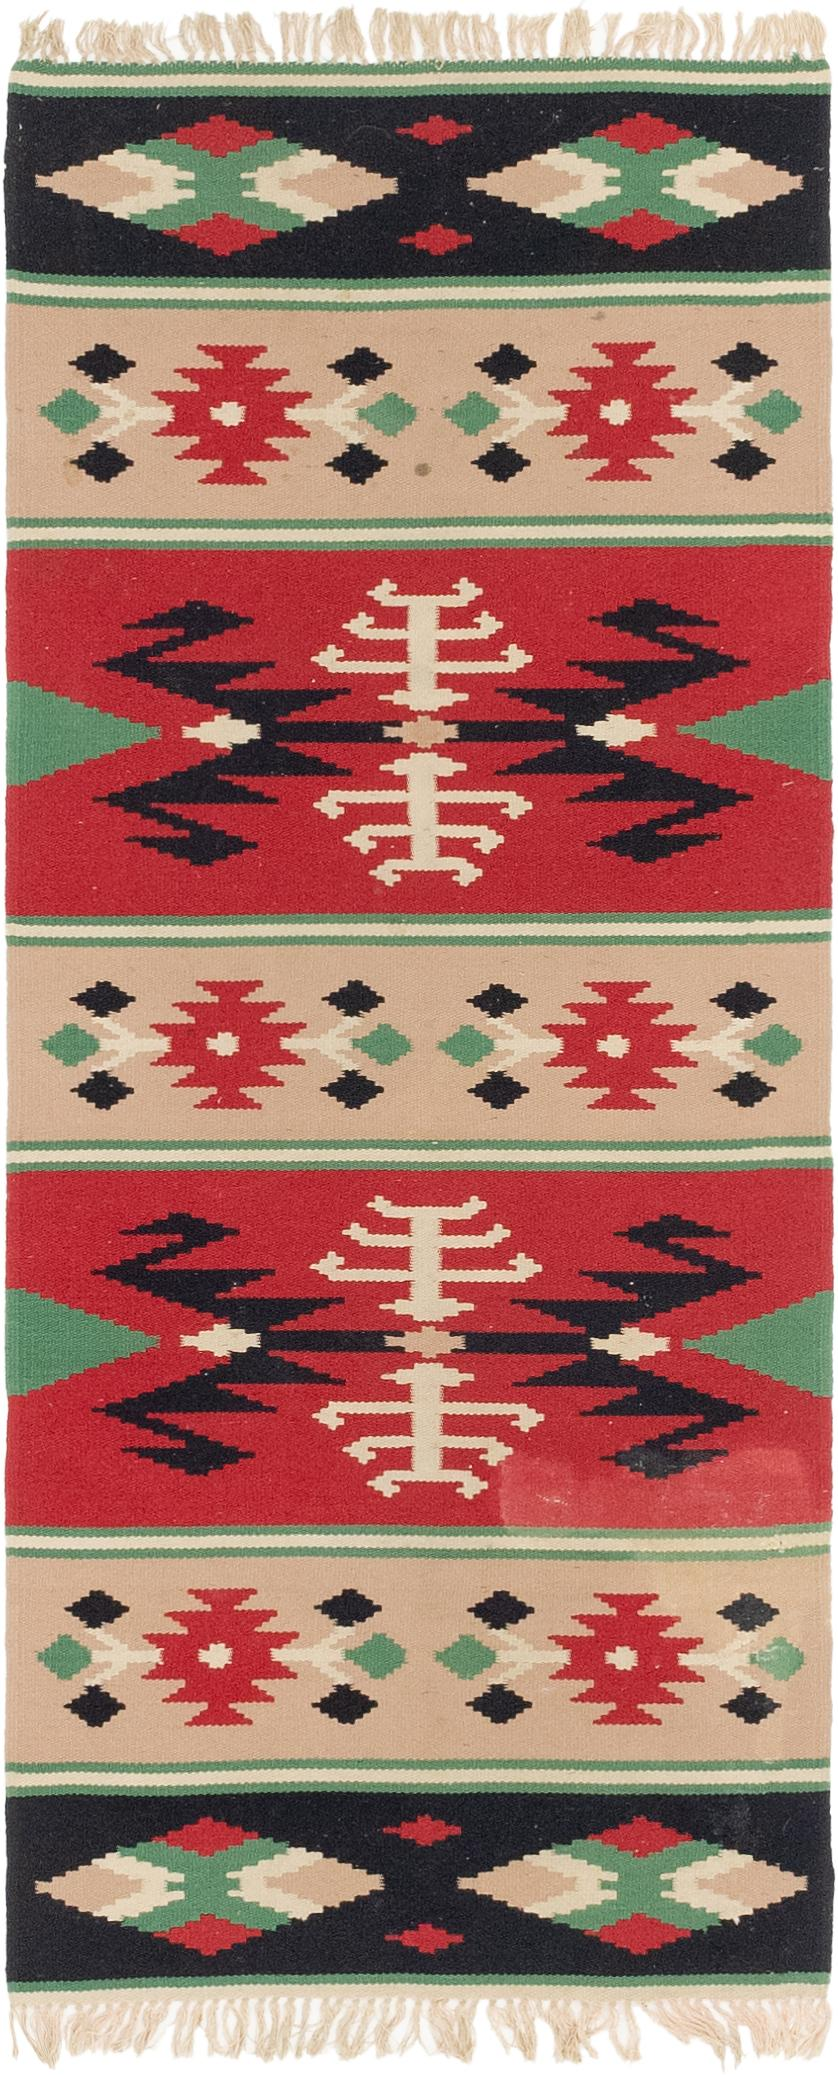 Red 2 3 X 5 10 Kilim Dhurrie Rug Handknotted Com